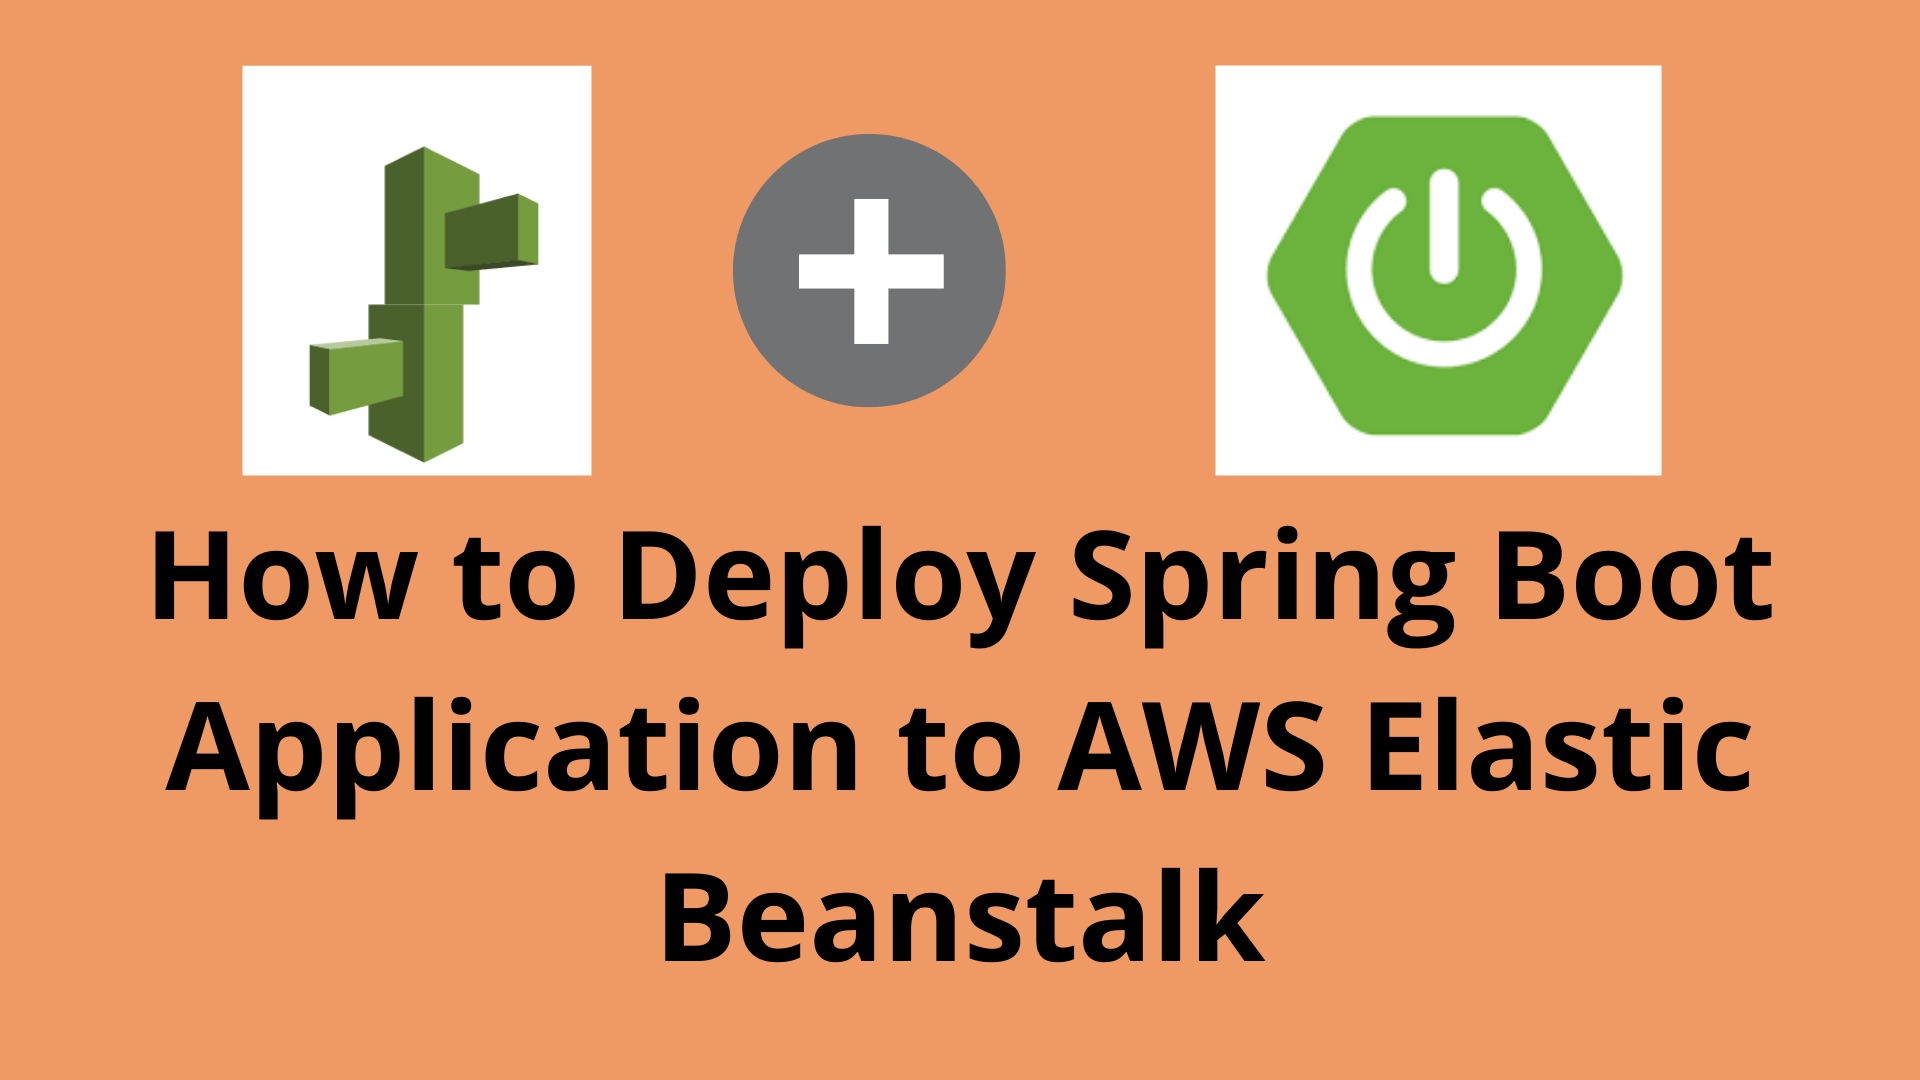 How to Deploy Spring Boot Application to AWS Elastic Beanstalk